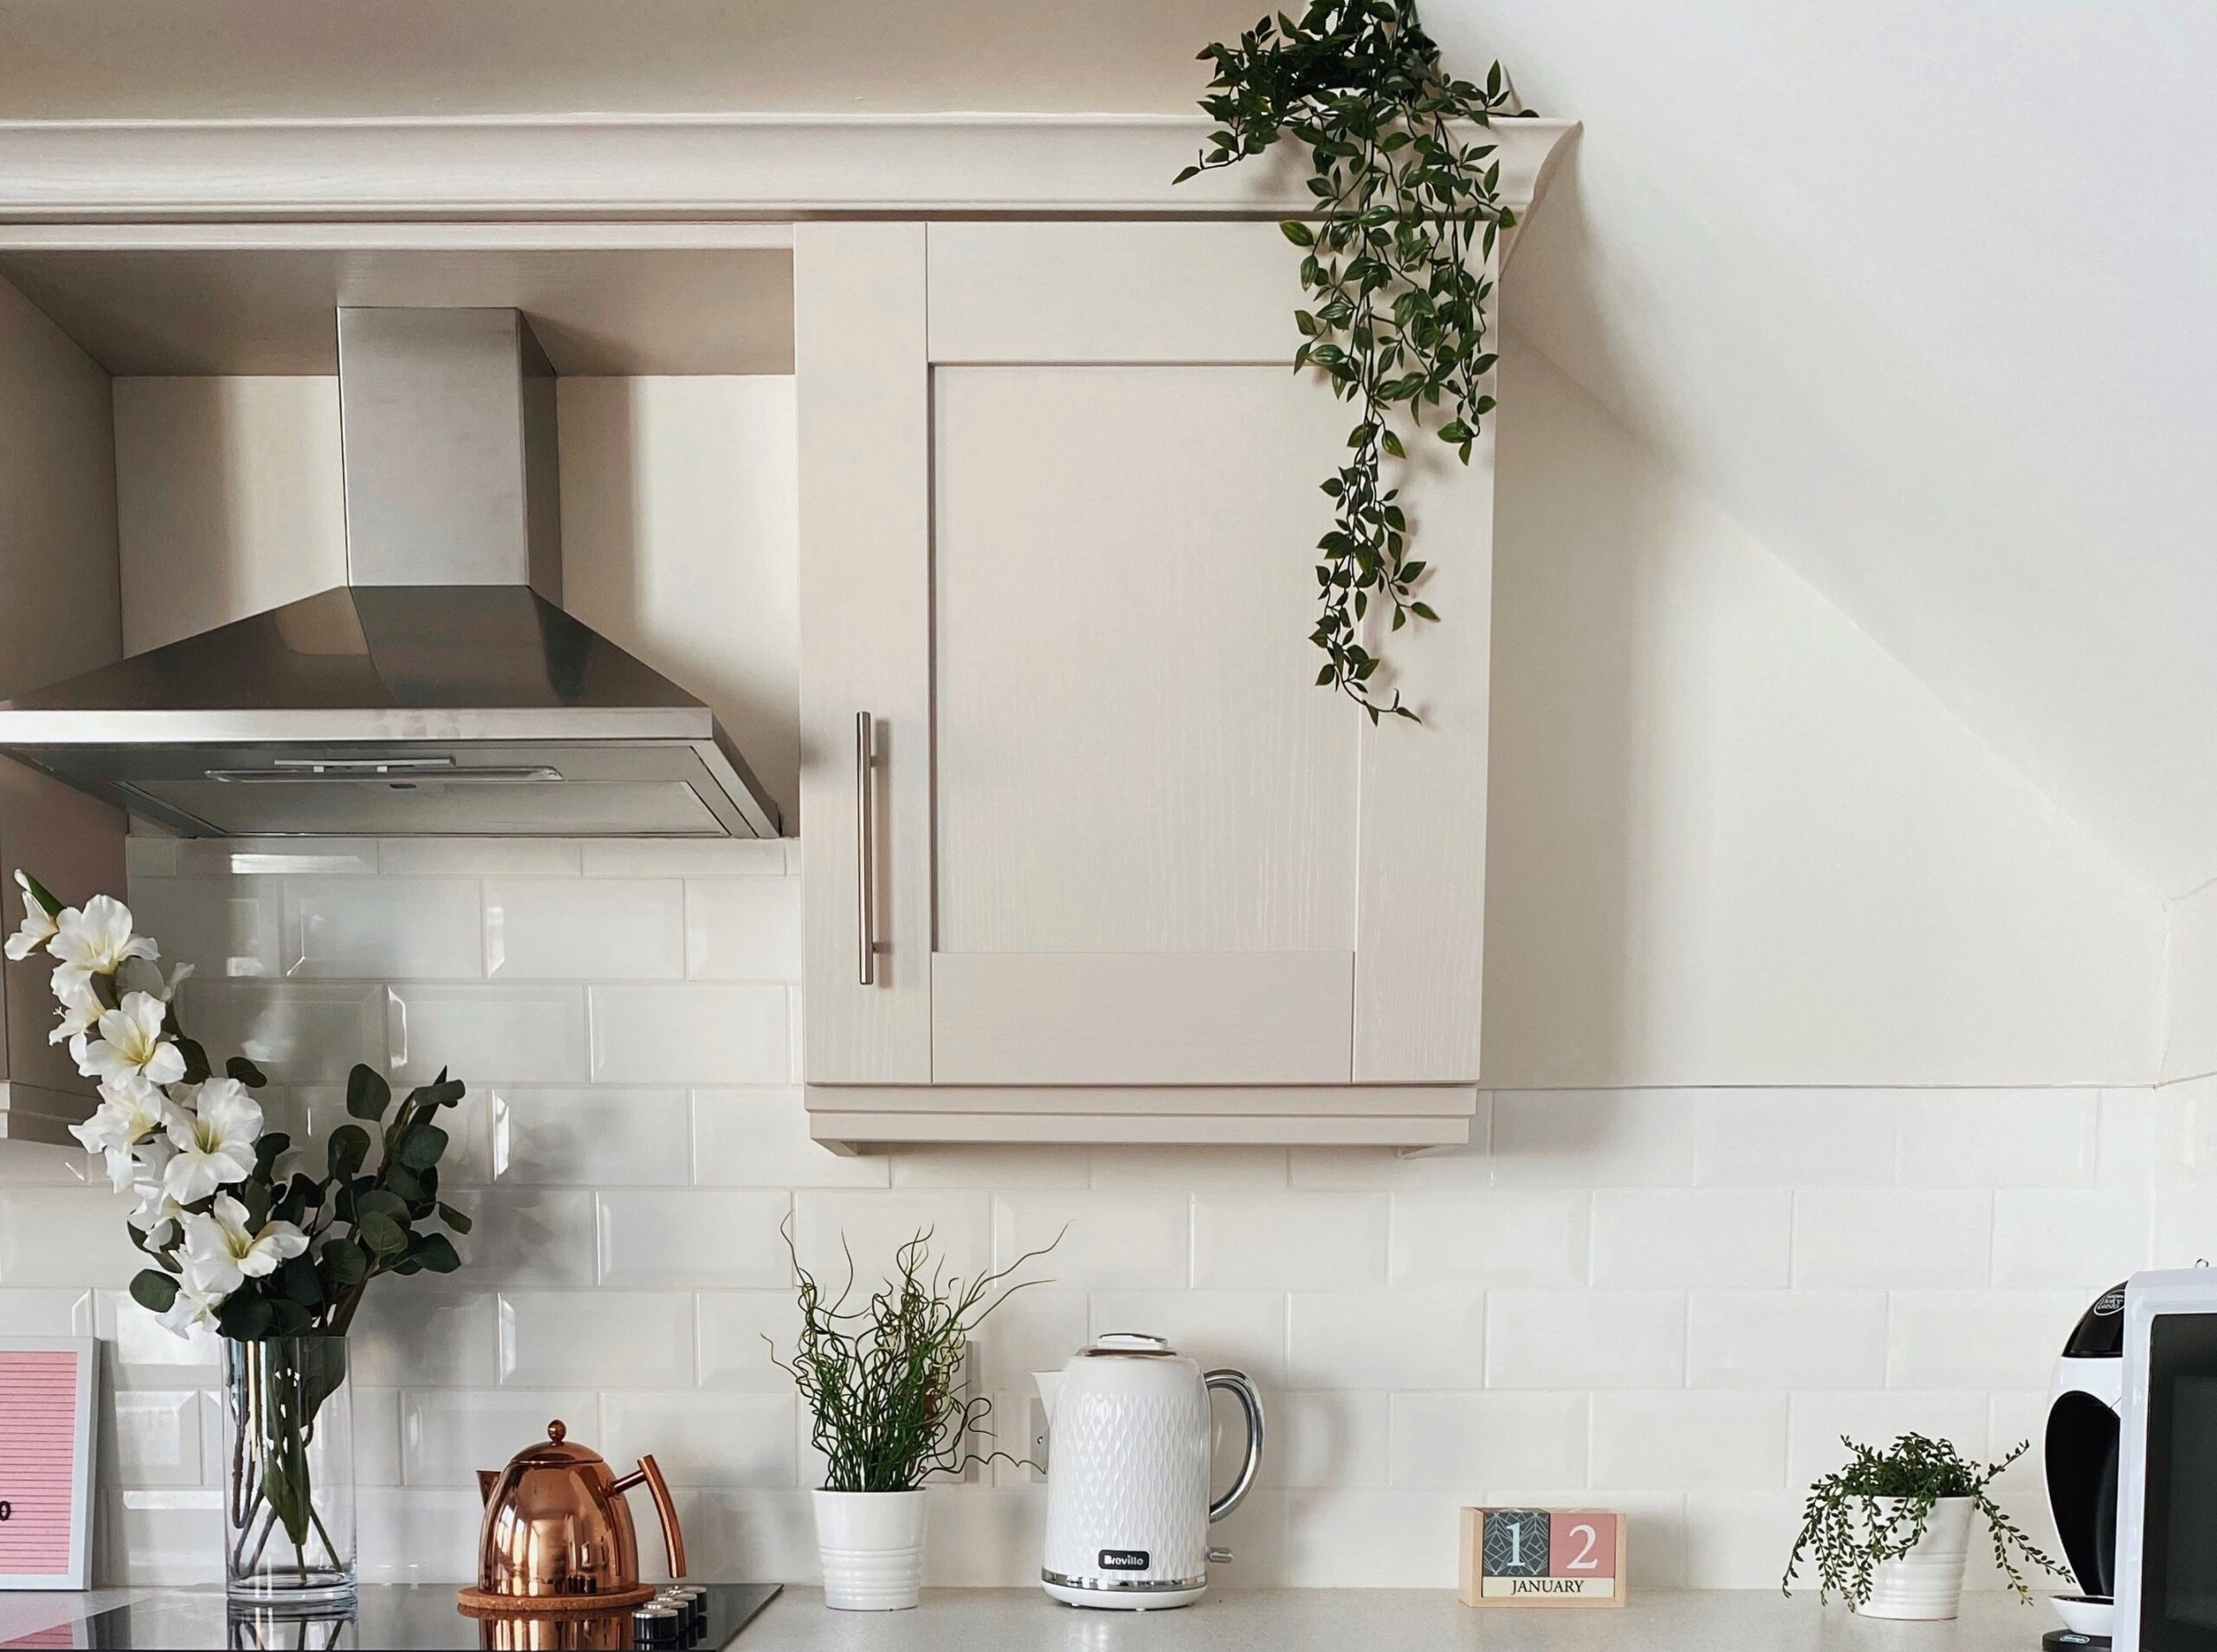 Plants On Top Of Kitchen Cabinets Is Greenery Above Kitchen Cabinets Outdated? With Ideas for Modern